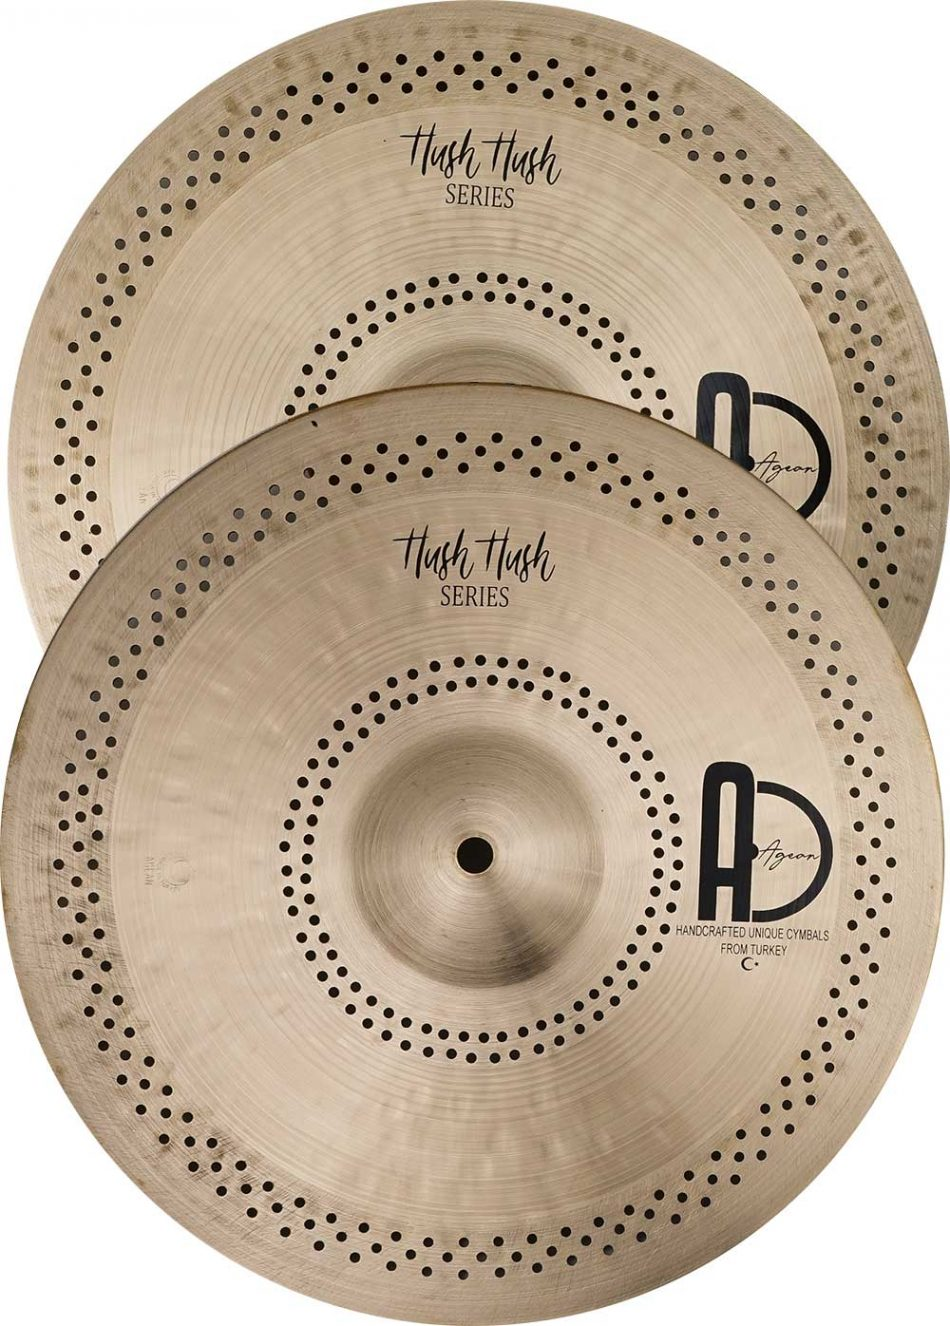 Hi-Hat Cymbals For Sale Hammered